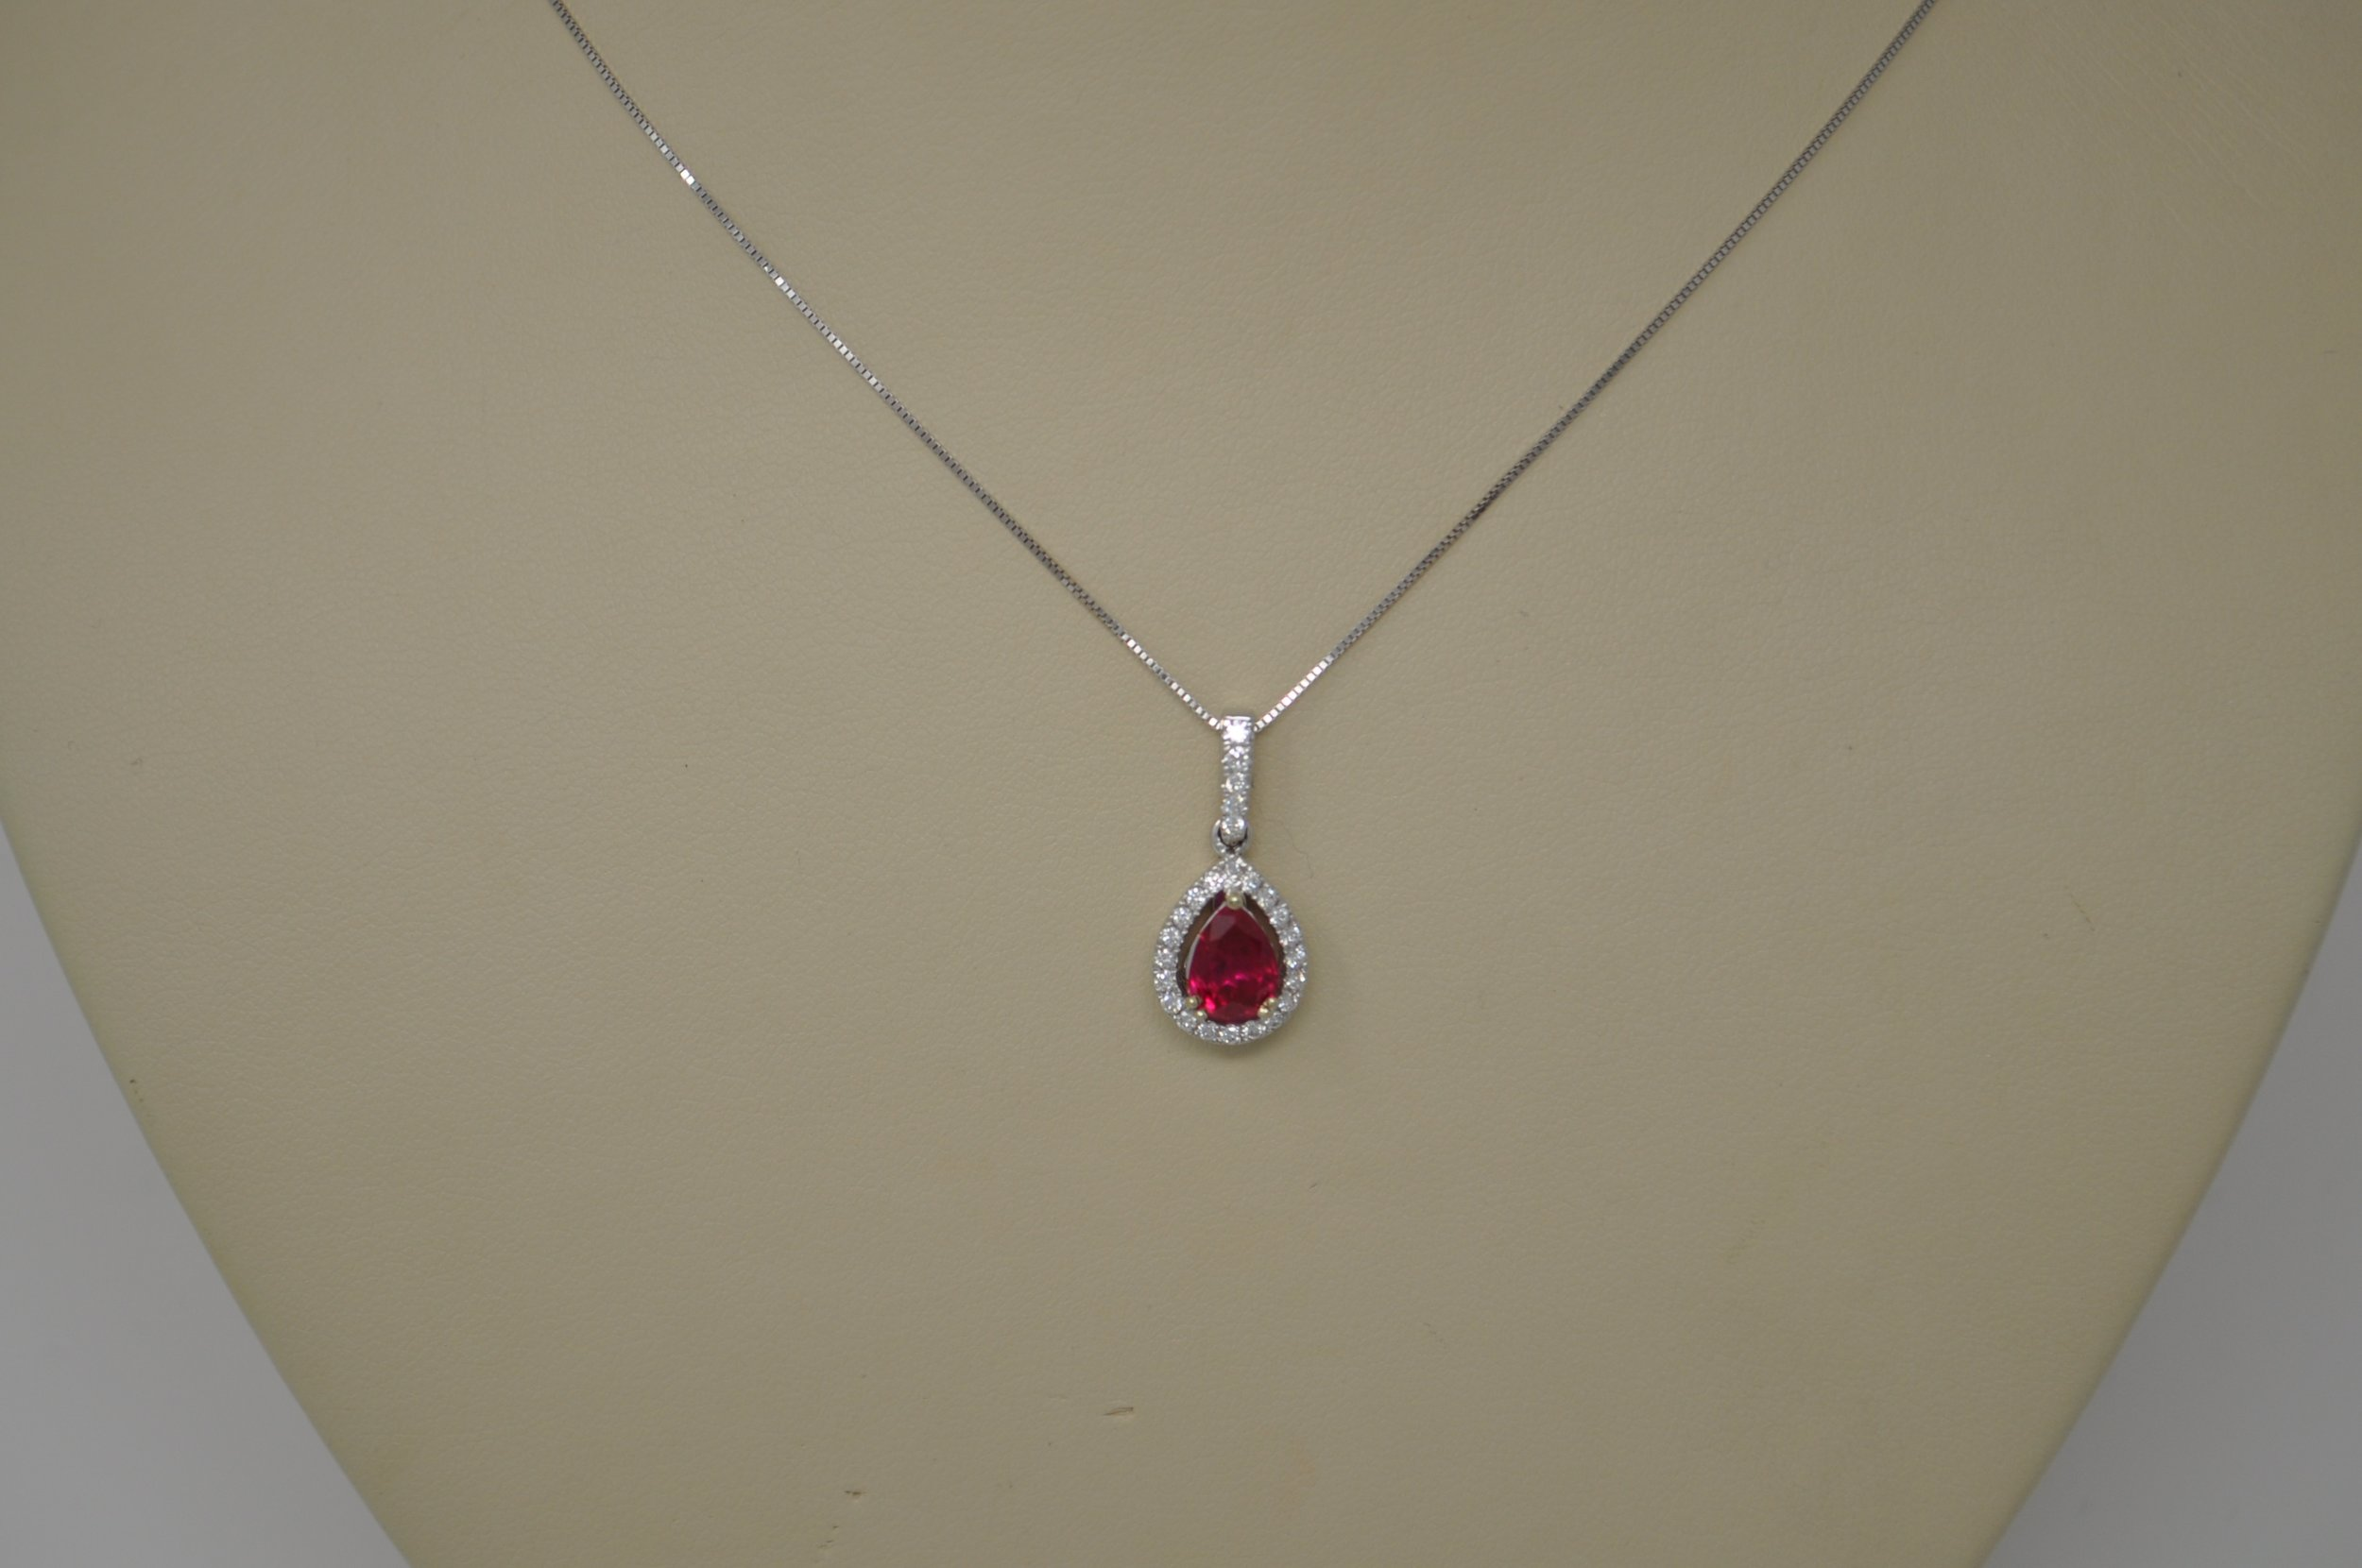 Ruby Pendant-stunning ruby and diamond pendant features a 1.09 ctw pear-cut lab-created ruby stone flanked by a halo of 25 diamonds on a 17 inch box chain. retail $1210.00